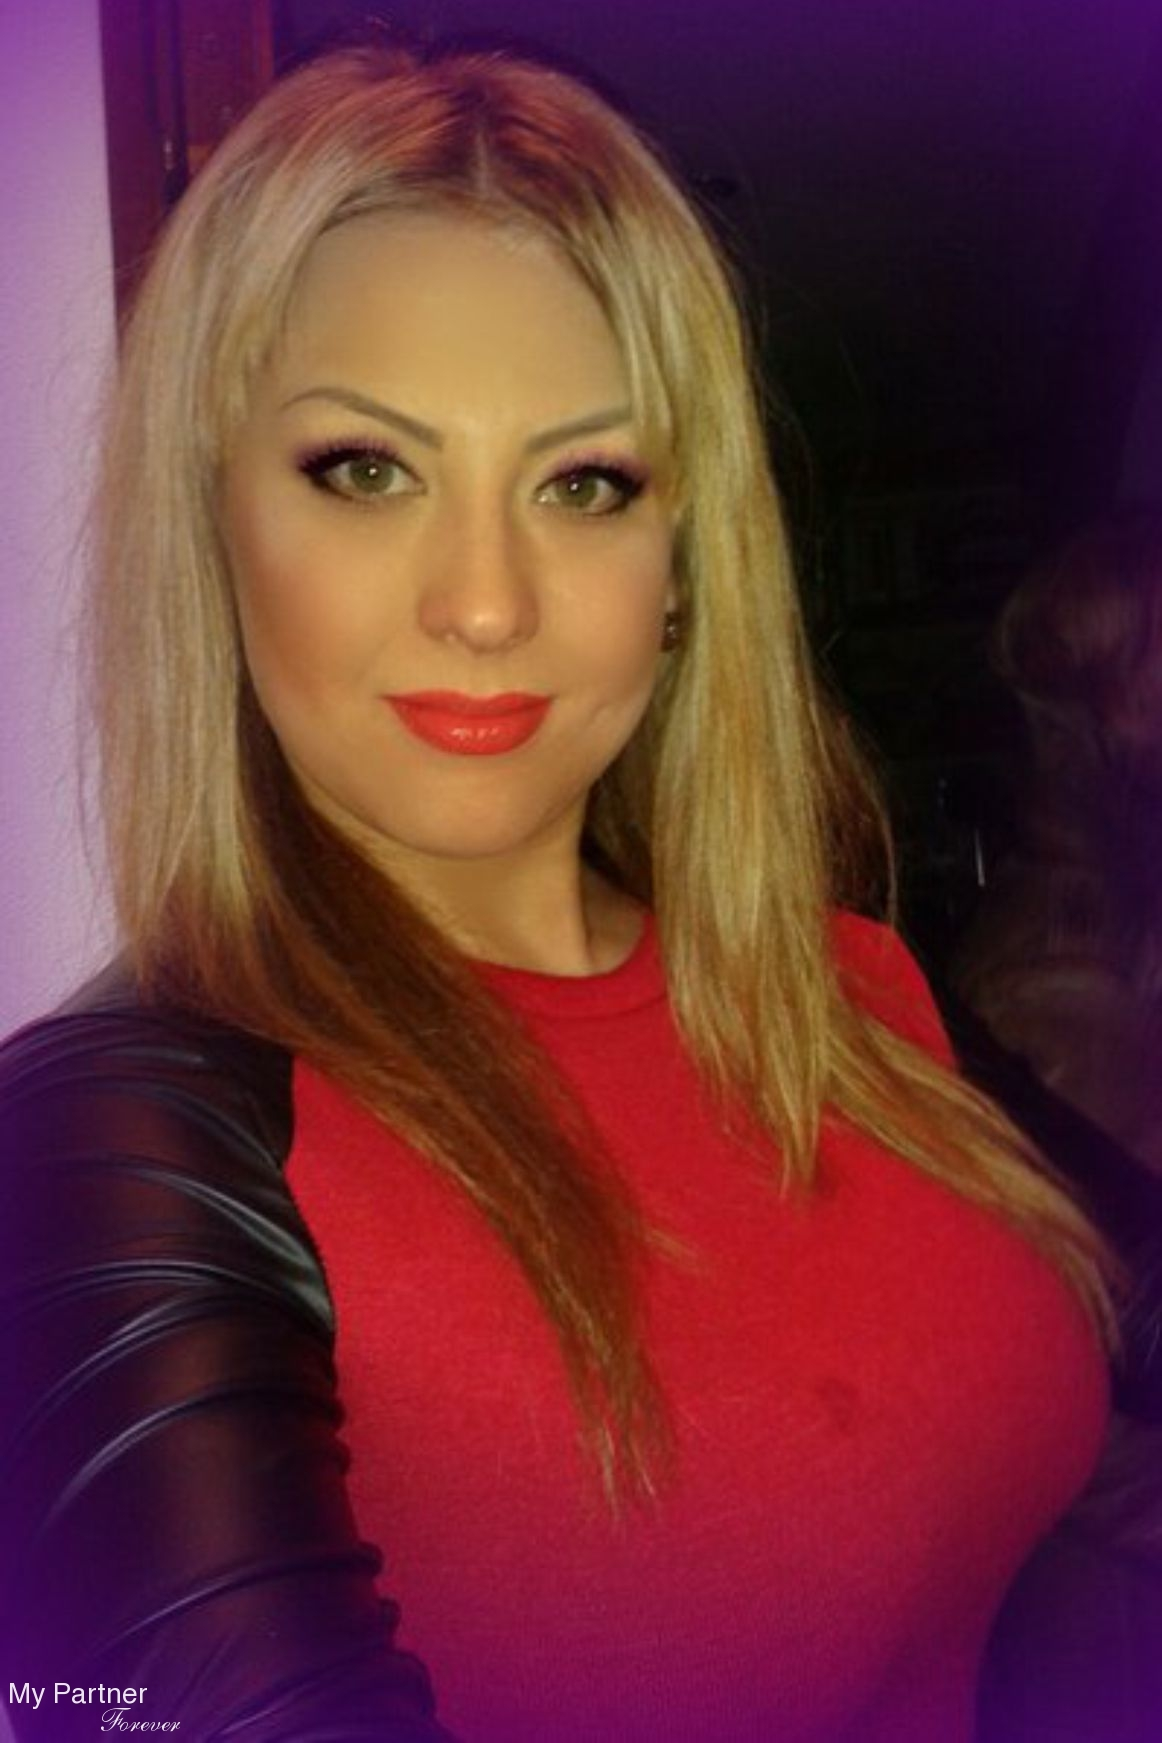 Russian women free dating sites